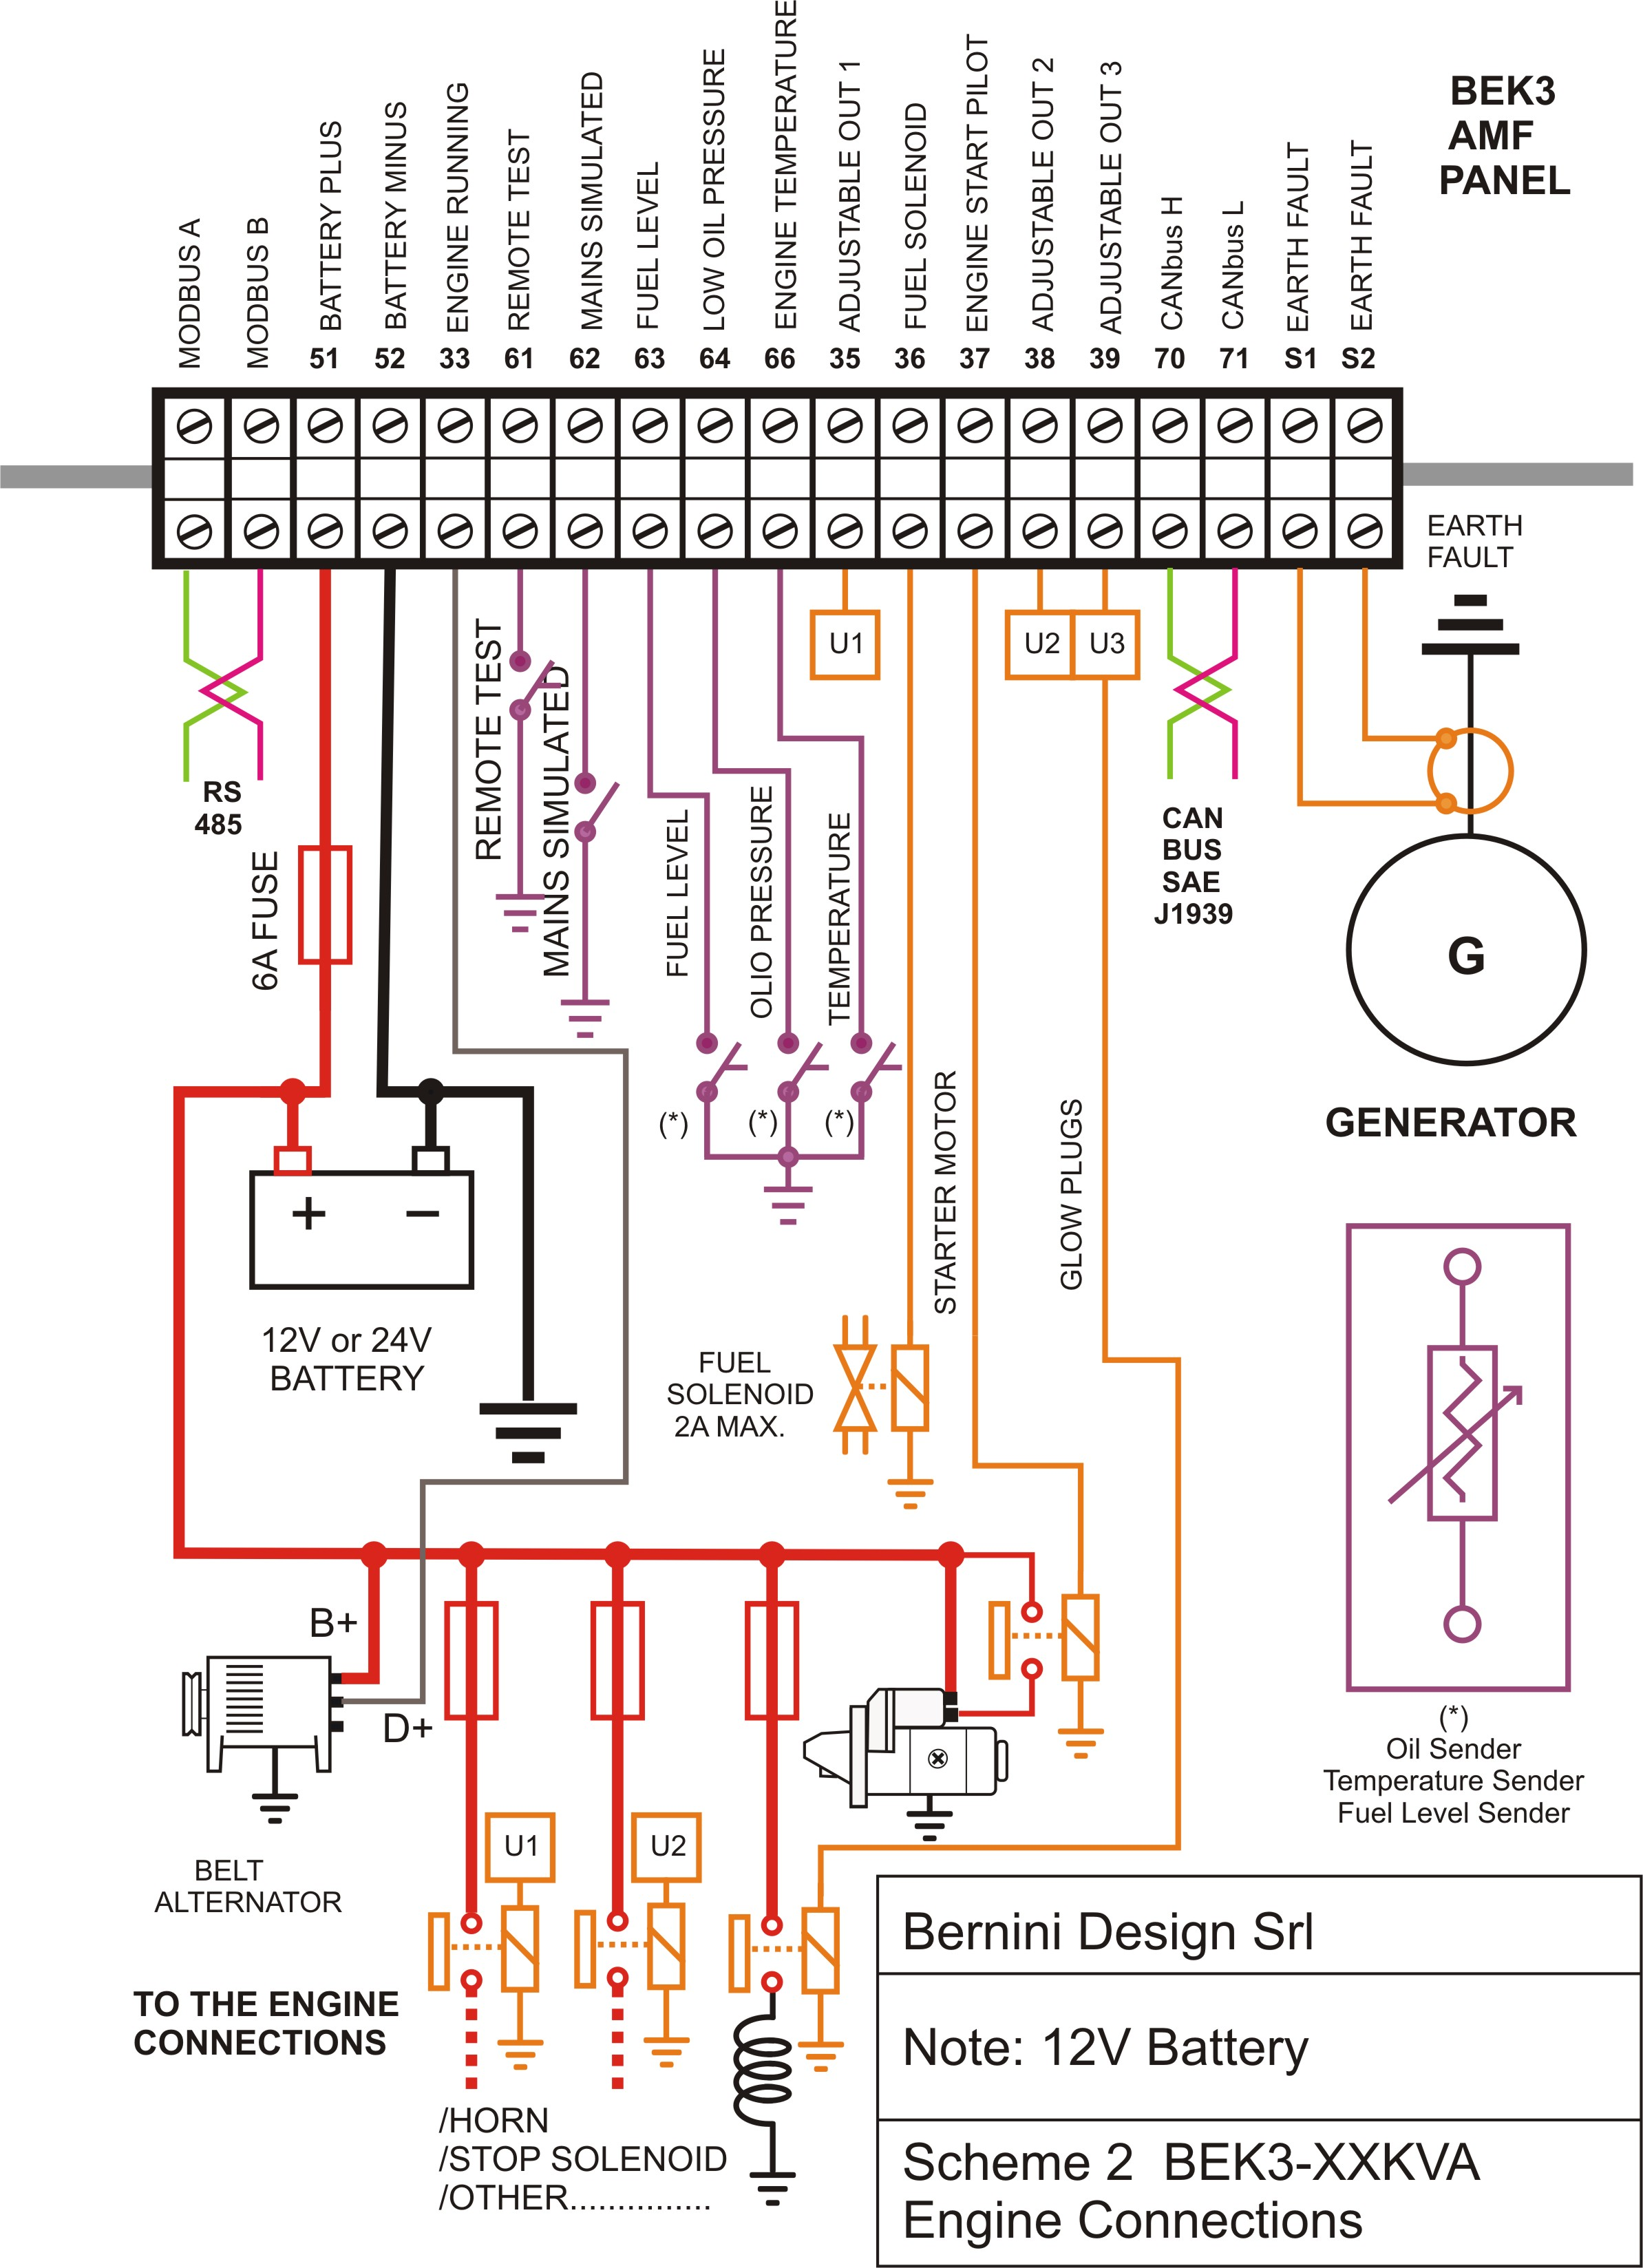 diesel generator control panel wiring diagram genset controller diesel generator control panel wiring diagram engine connections